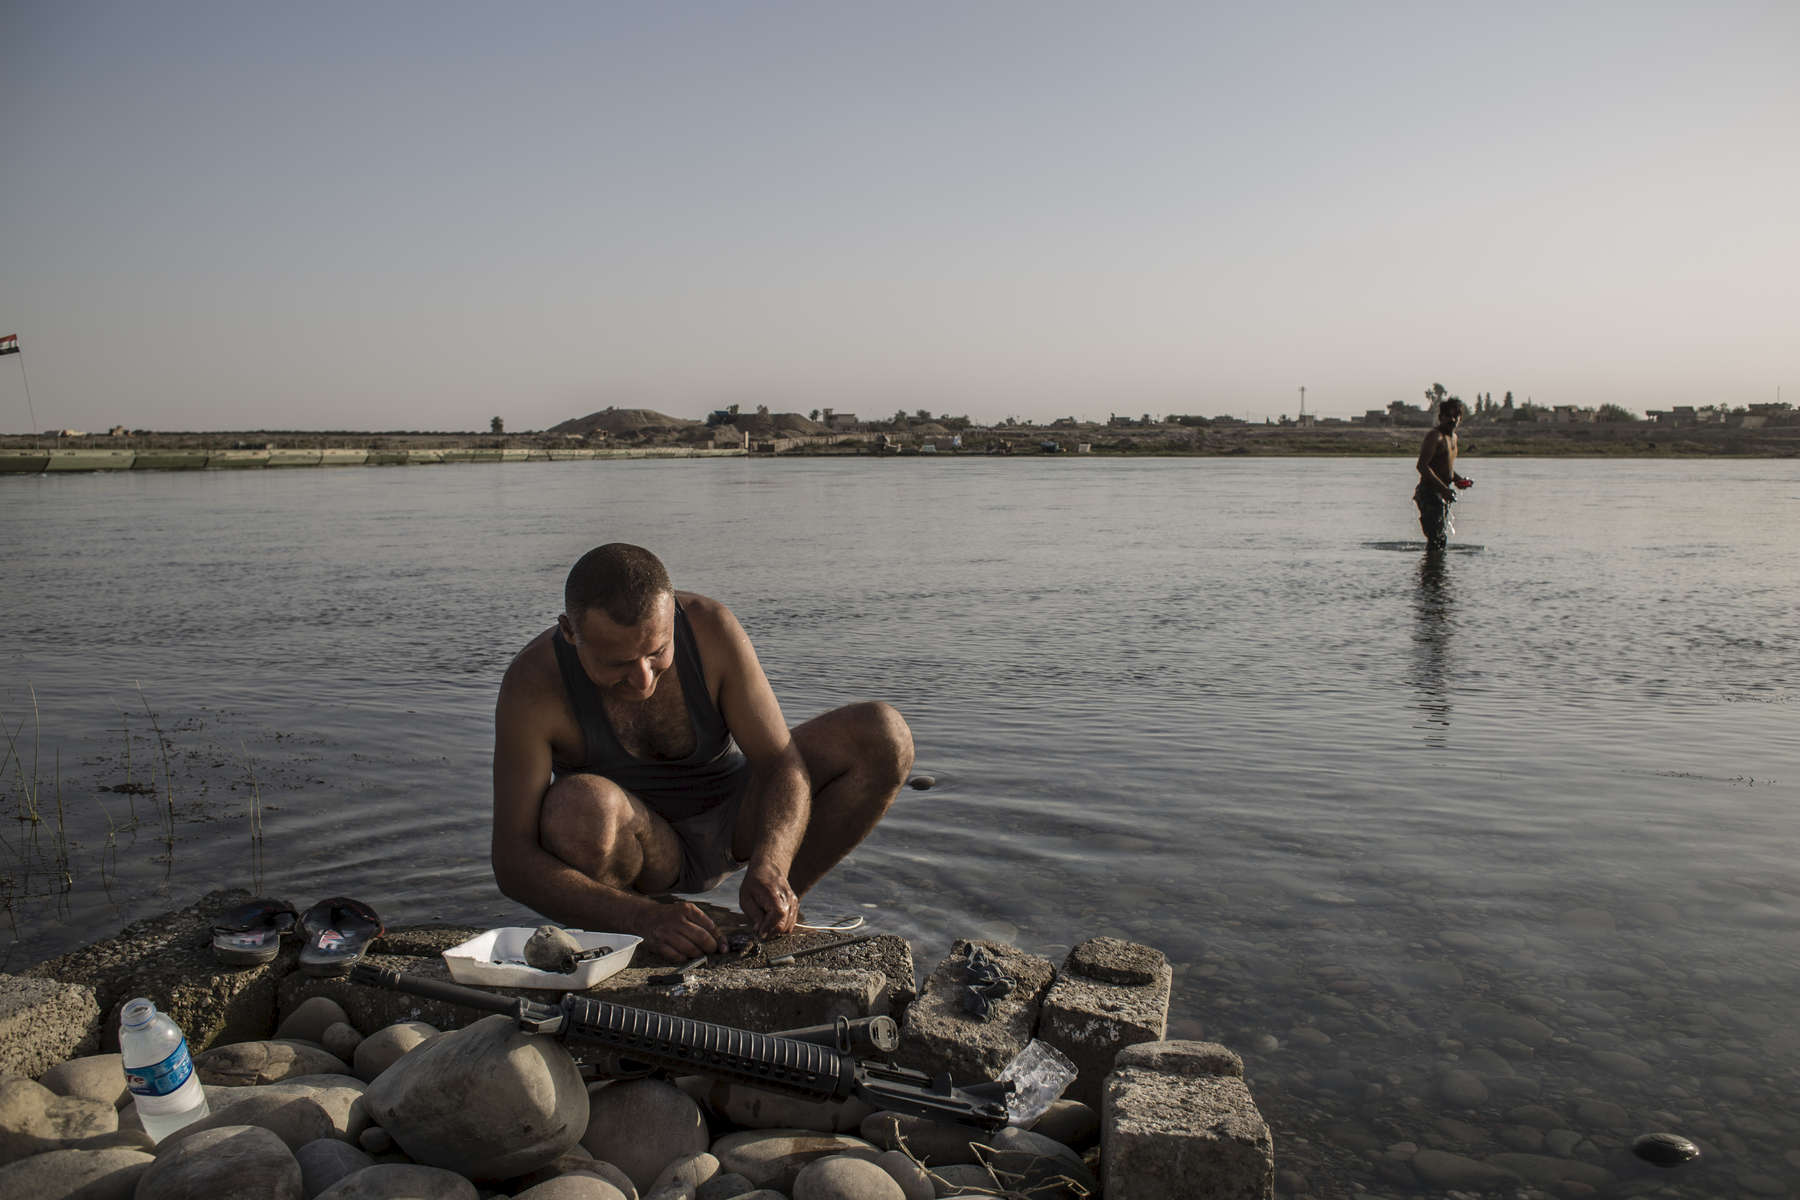 02/09/2016 -- Qayarah, Iraq --  An Iraqi soldier cleans his rifle in the Tigris river near Qayyarah.